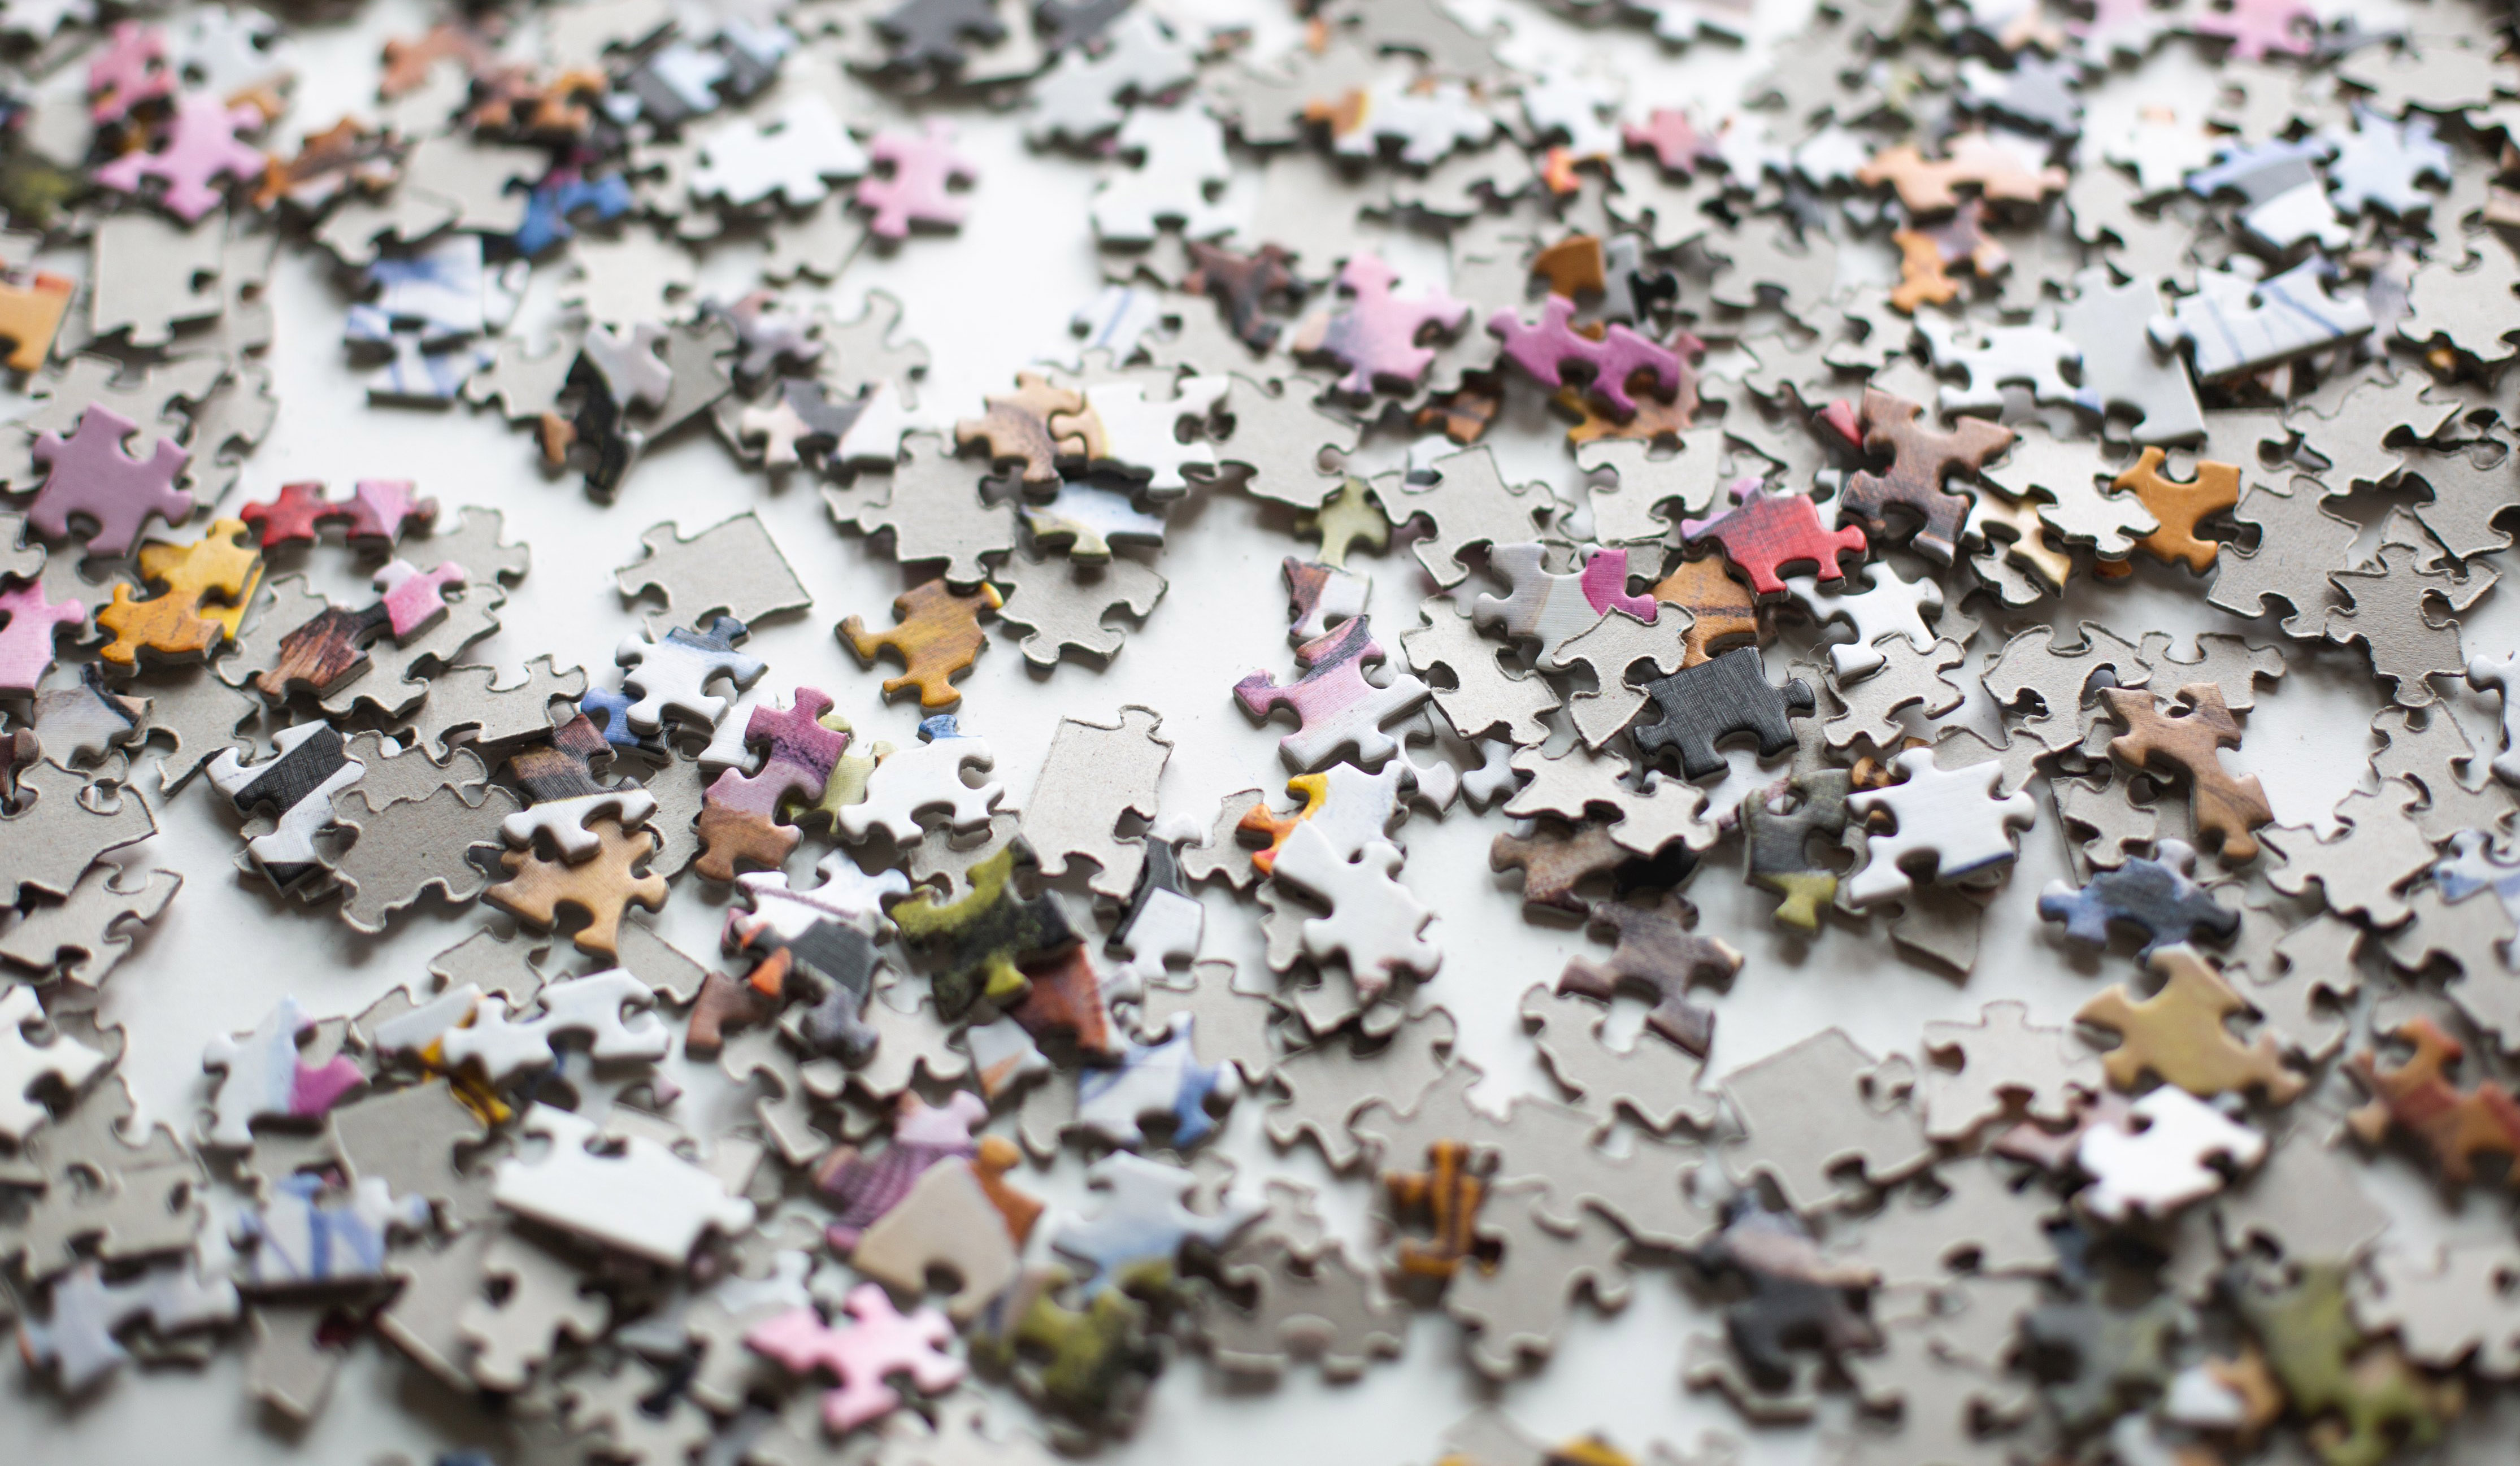 cropped_puzzle-pieces-scattered-across-a-surface